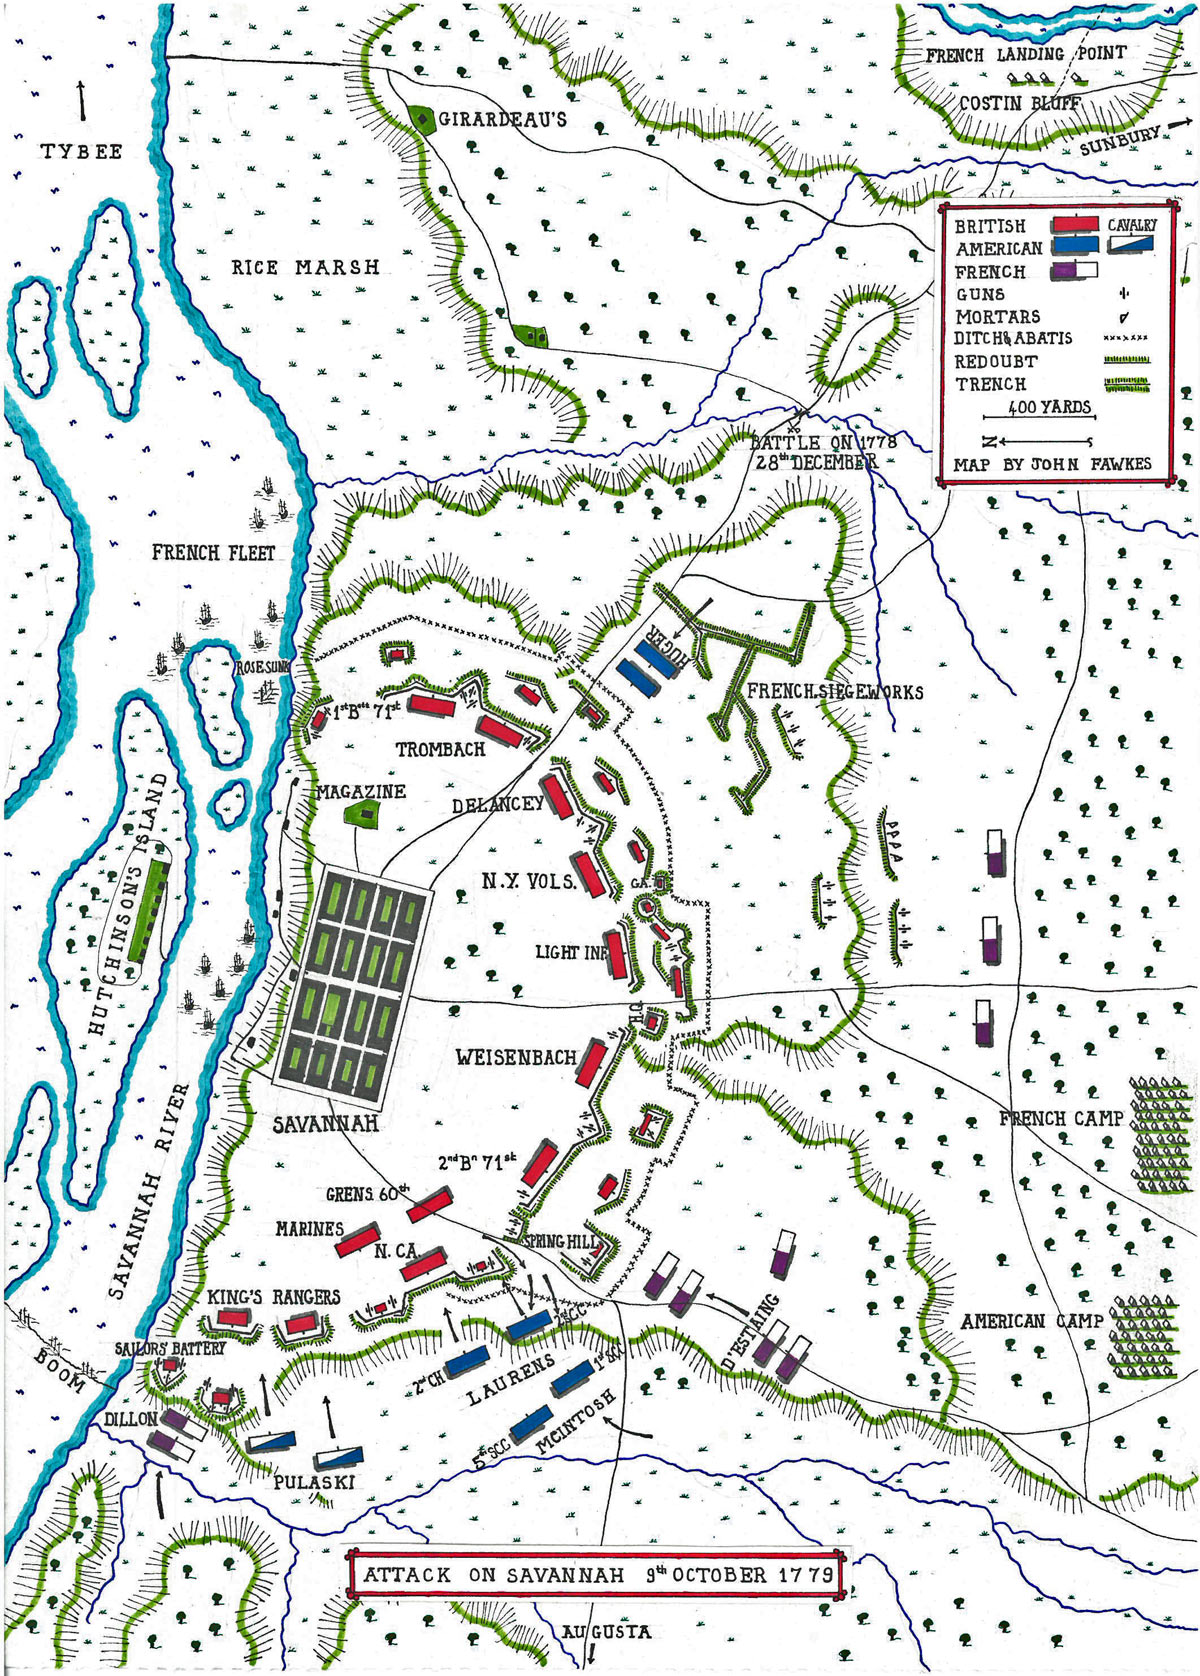 Map of the Siege of Savannah and the Attack on 9th October 1779 in the American Revolutionary War: map by John Fawkes